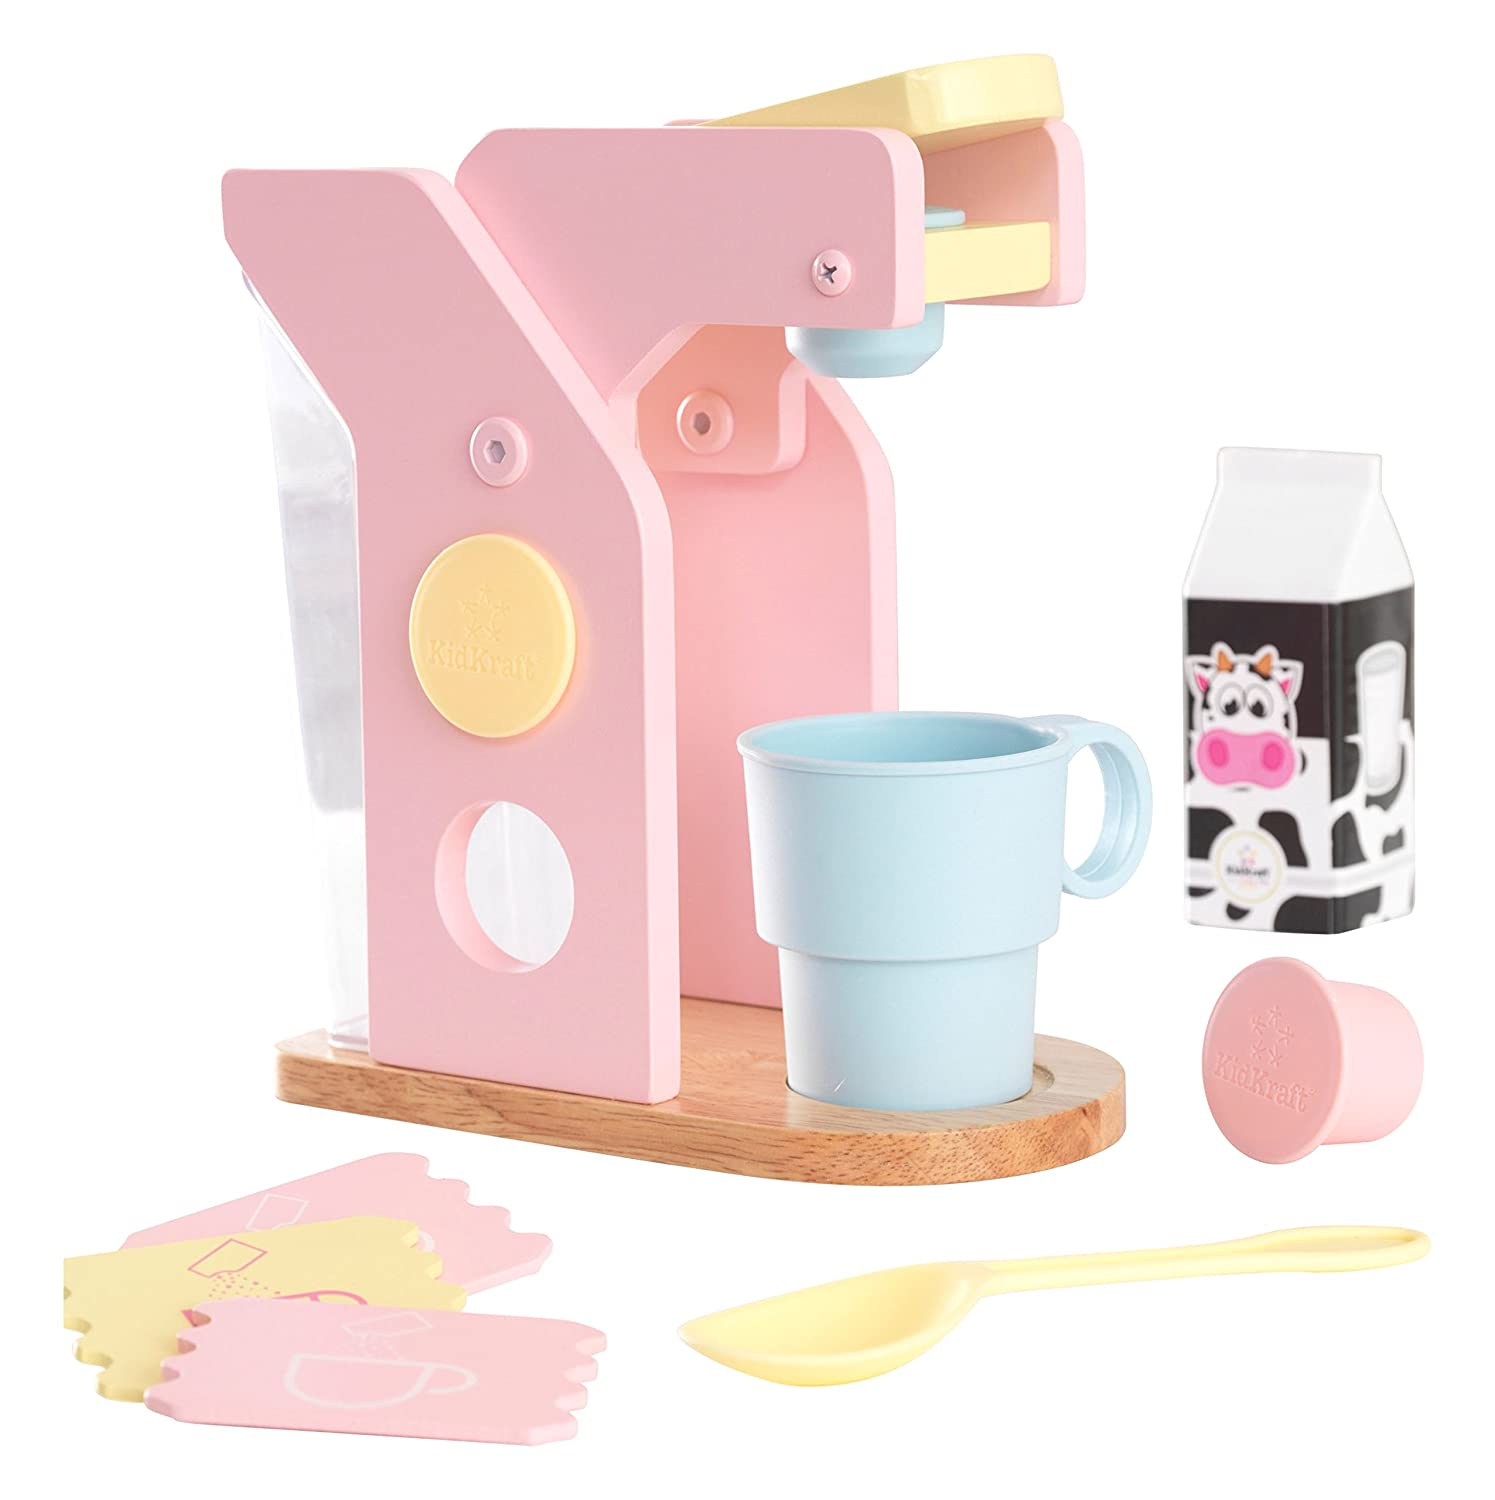 KidKraft Children's Pastel Coffee Set - Role Play Toys for The Kitchen, Play Kitchen Accessories